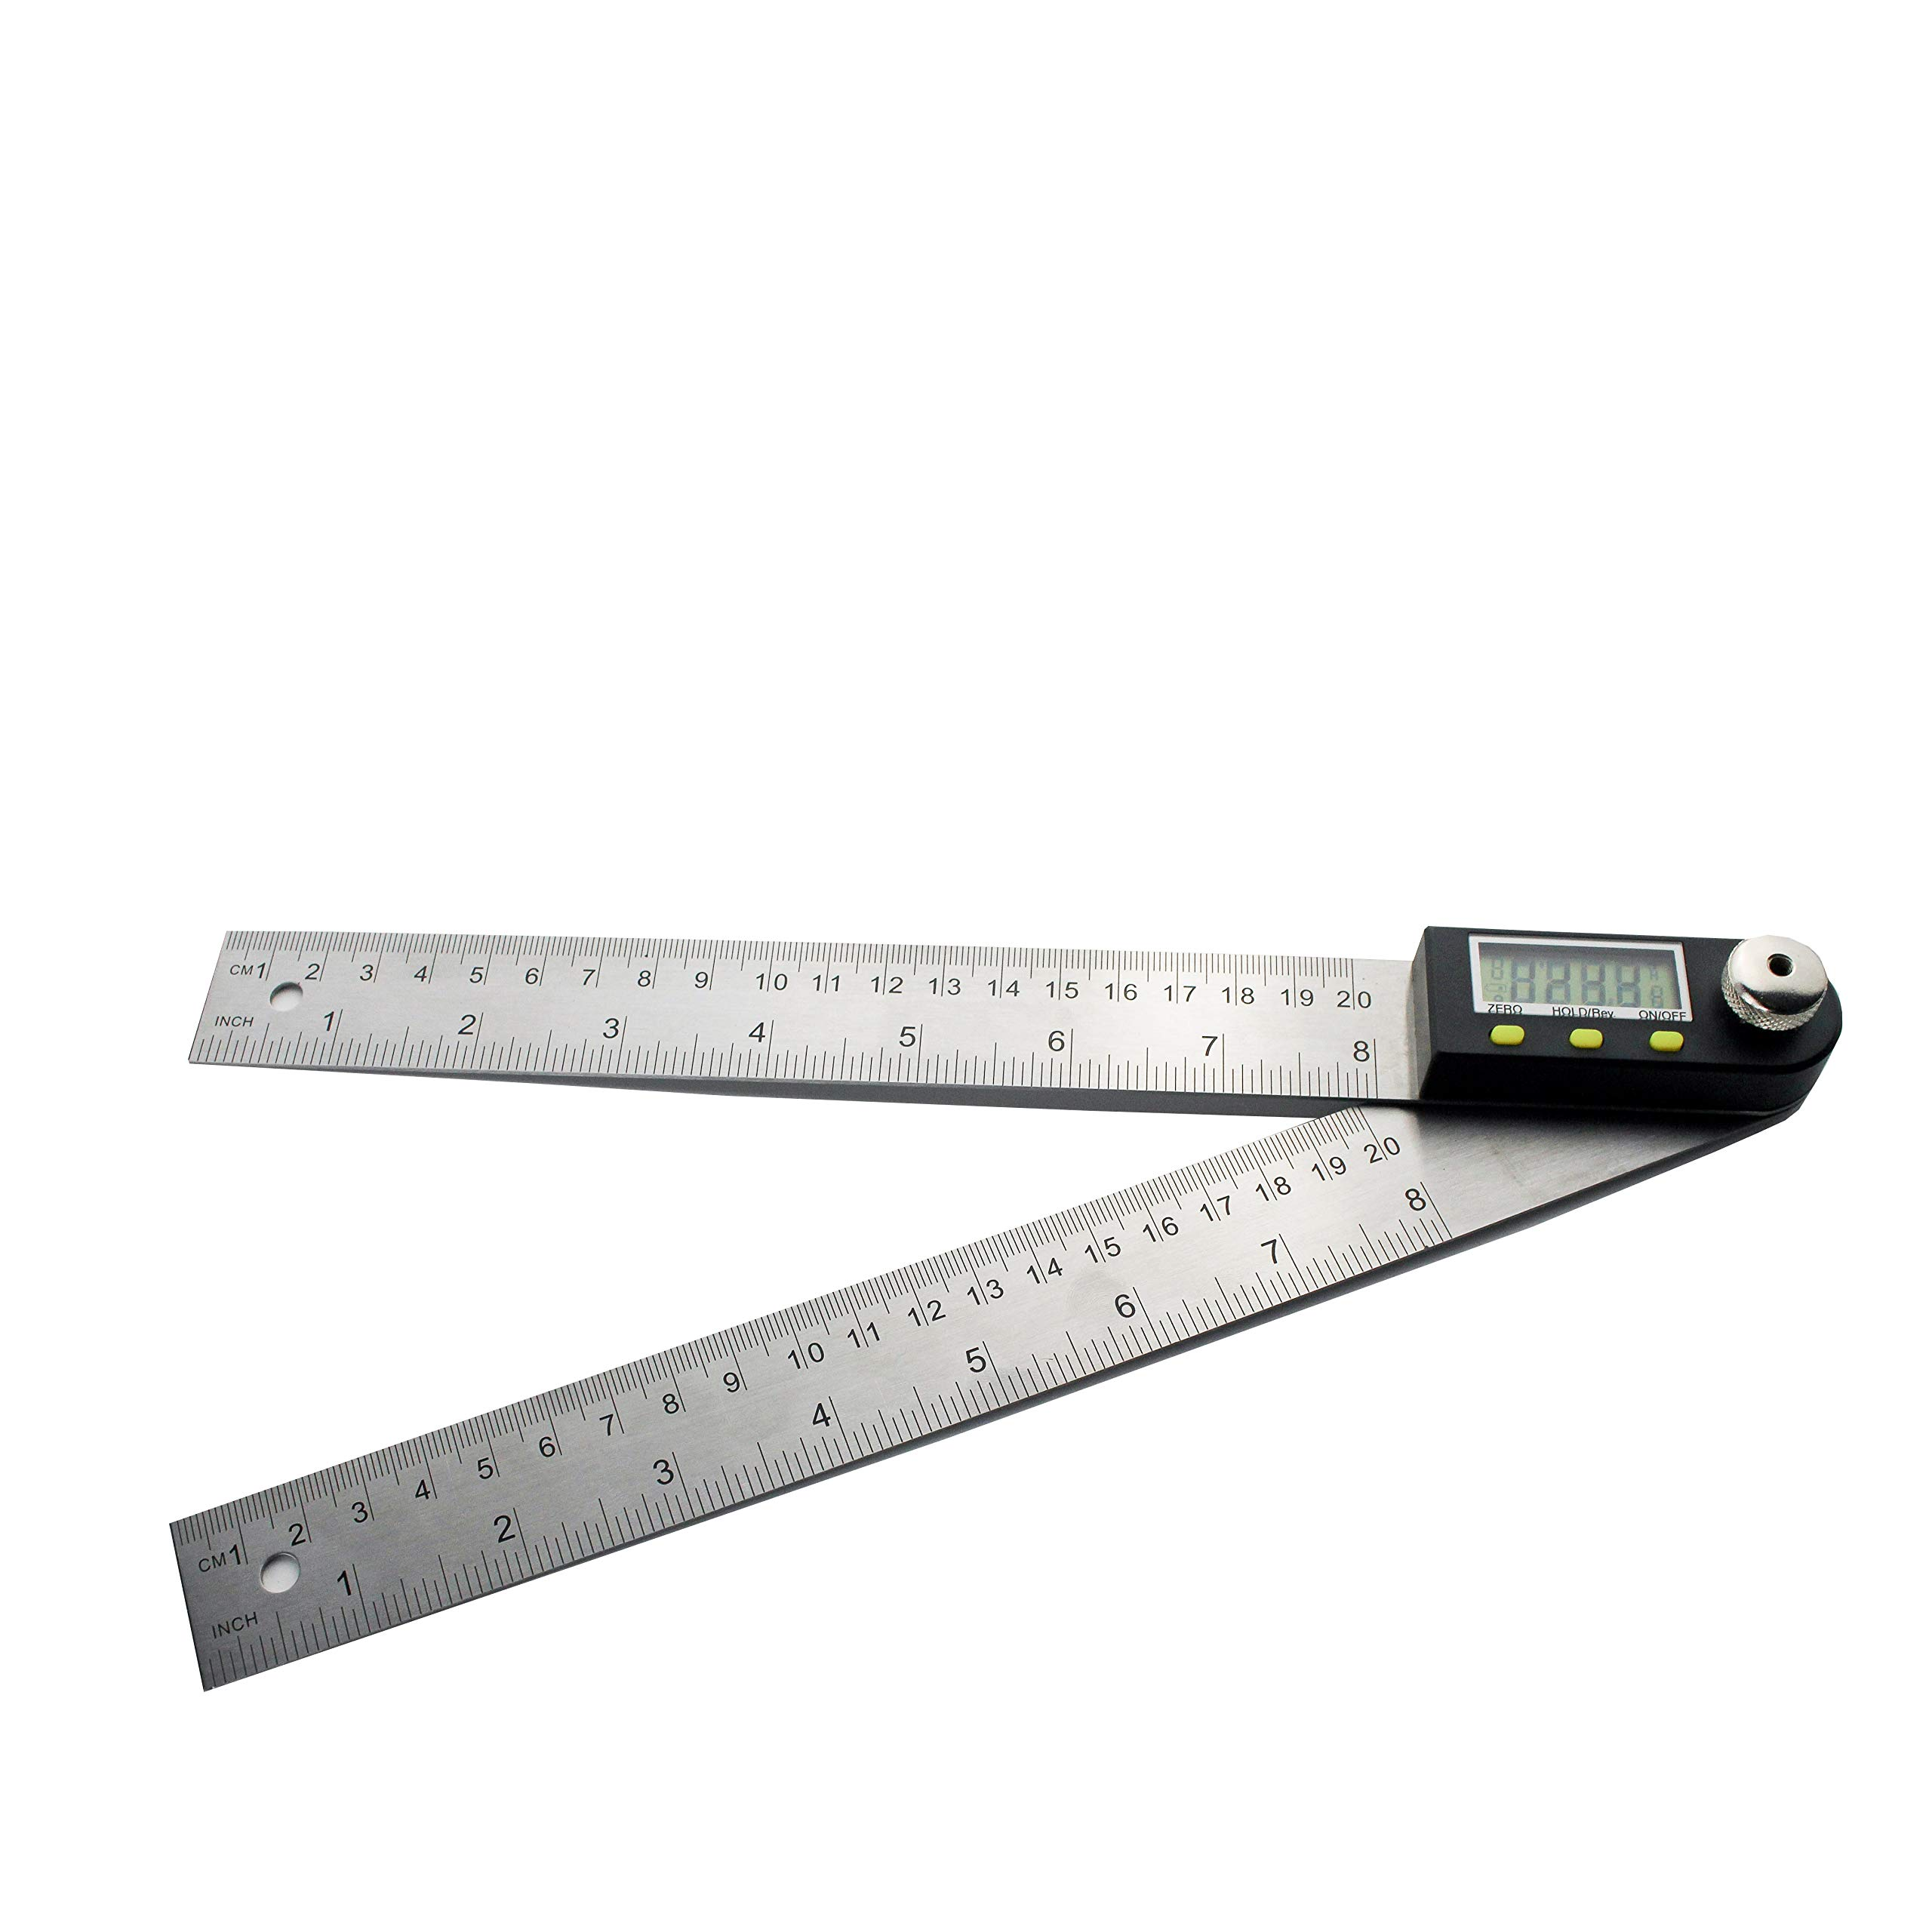 Digital Angle Finder Protractor, PUSU 8 Inch Angle Finder Ruler with HOLD and Zeroing Function, Large LCD Display, Coin Battery Included for Woodworking, Repairing (Stainless Steel 200mm)